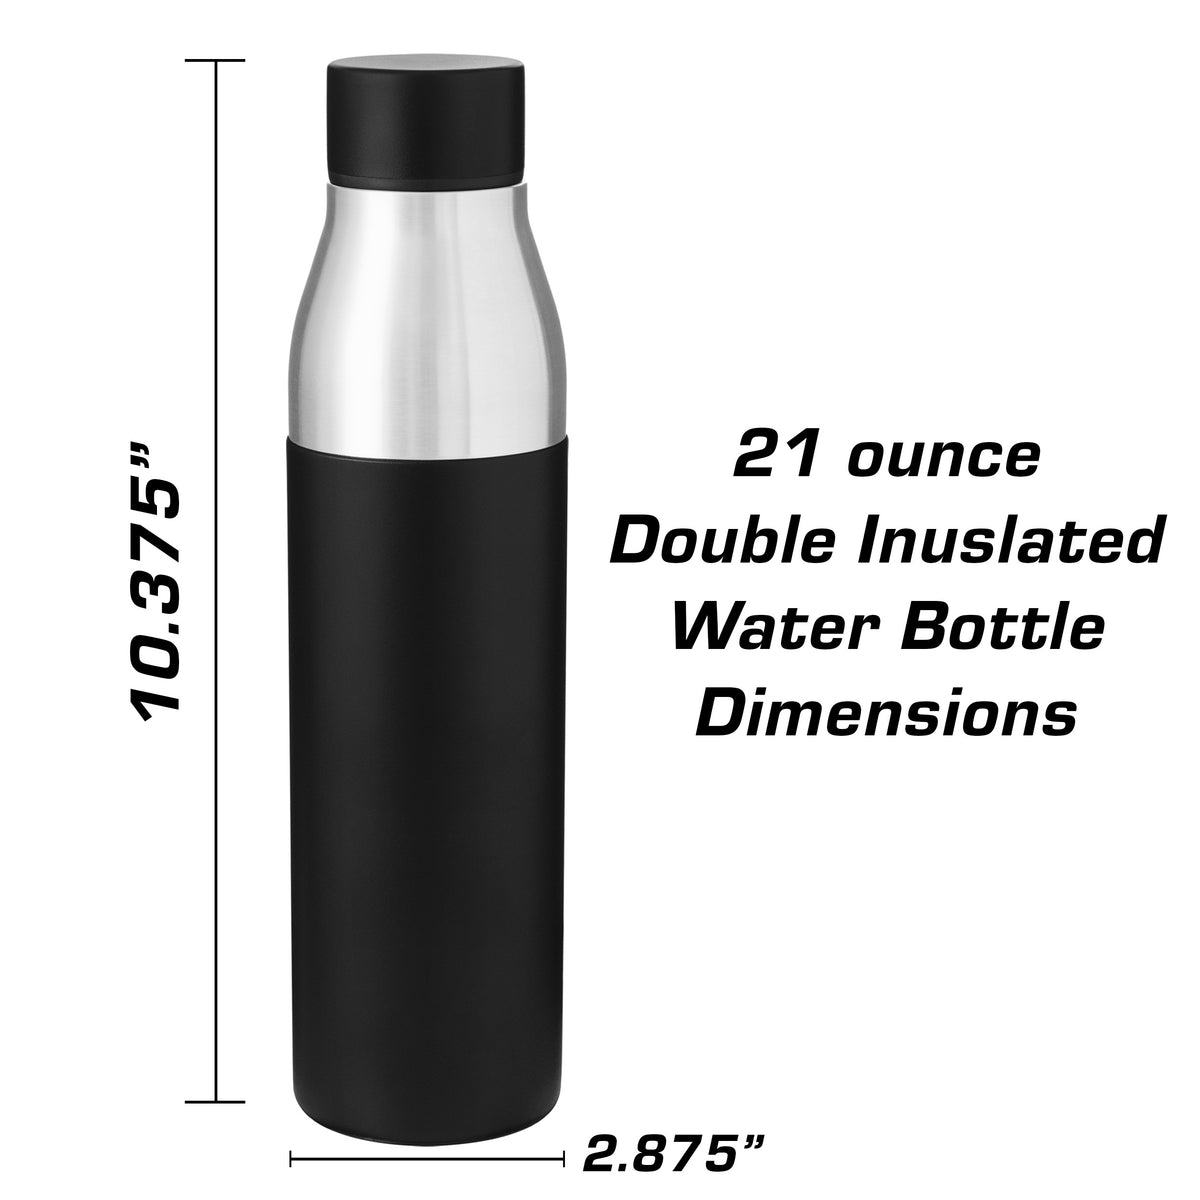 Chevy K10 Cheyenne Truck Insulated Stainless Steel Water Bottle - 21 oz